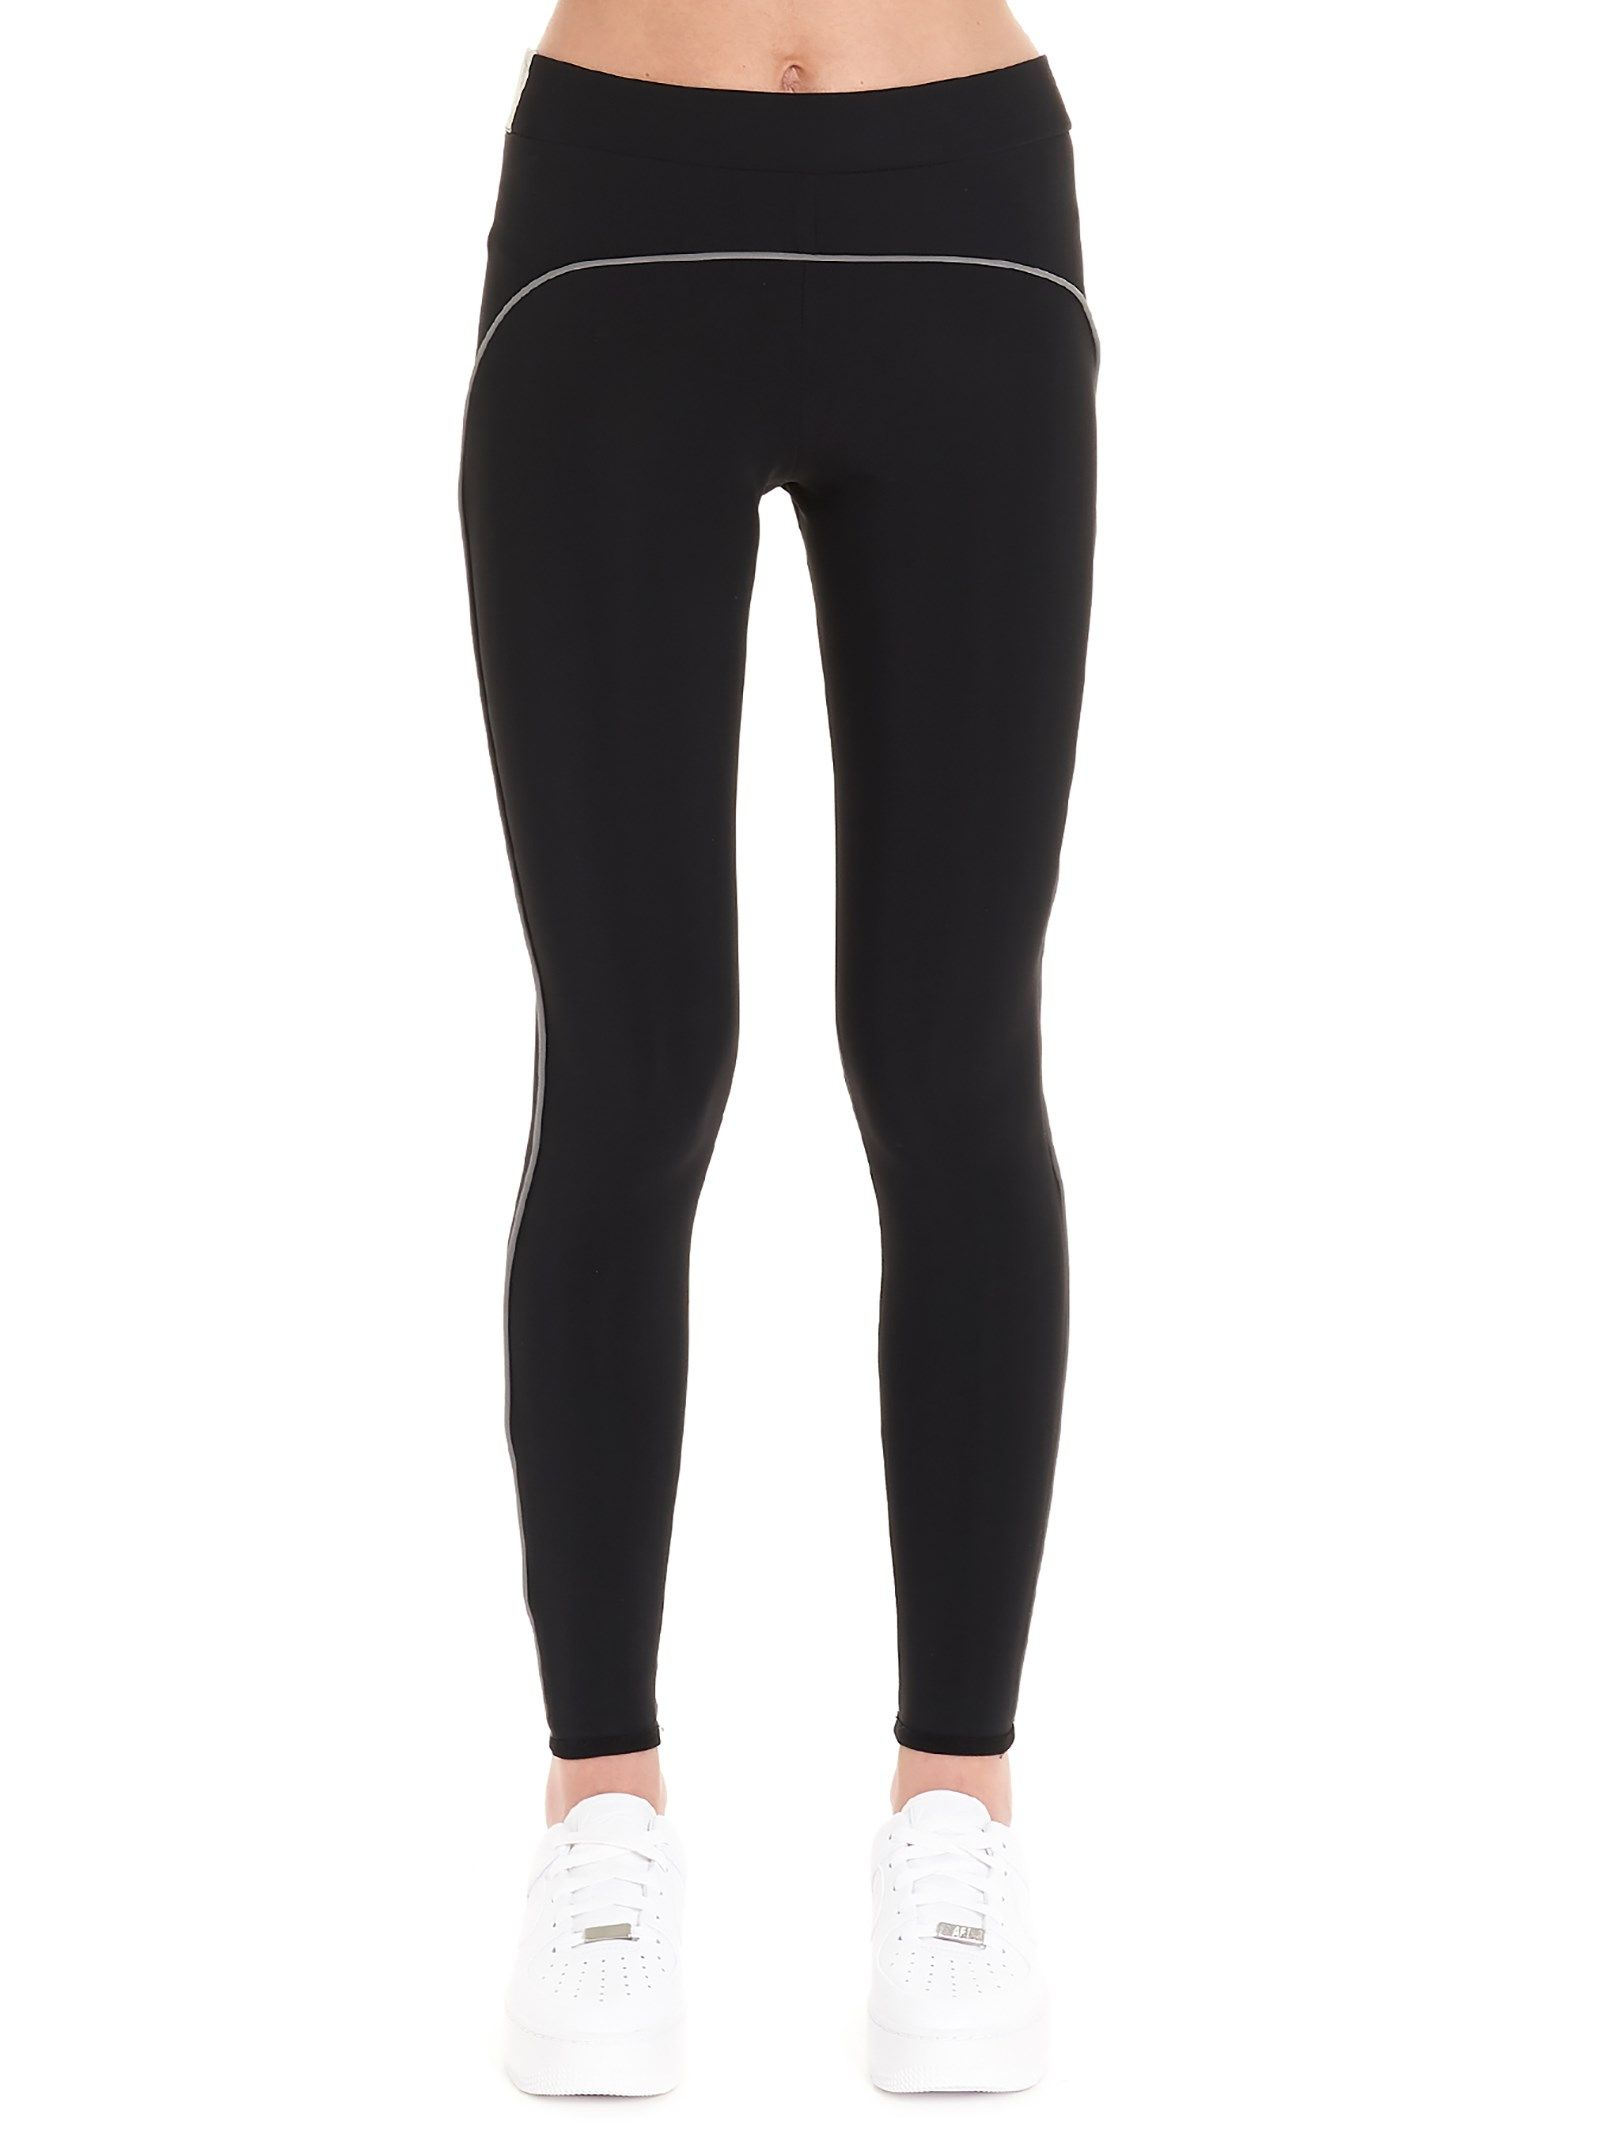 A-COLD-WALL* WOMEN'S CW9SWT03ACJE063999 BLACK POLYESTER LEGGINGS